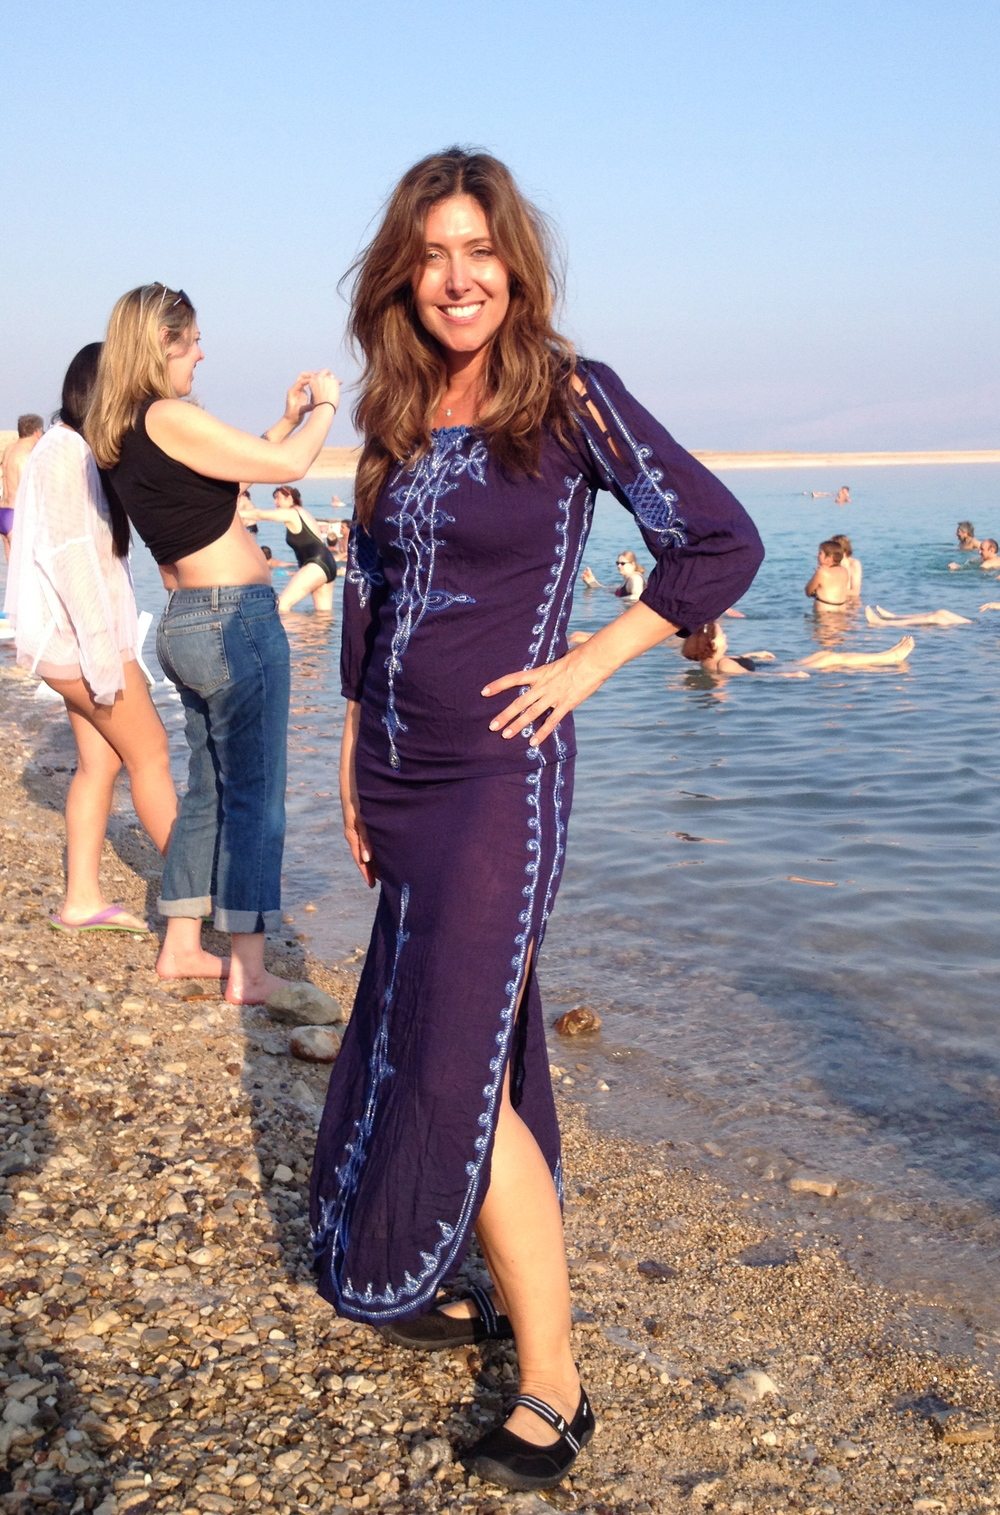 At the Dead Sea in Israel wearing my  Poupettte St. Barth  beach cover-up.